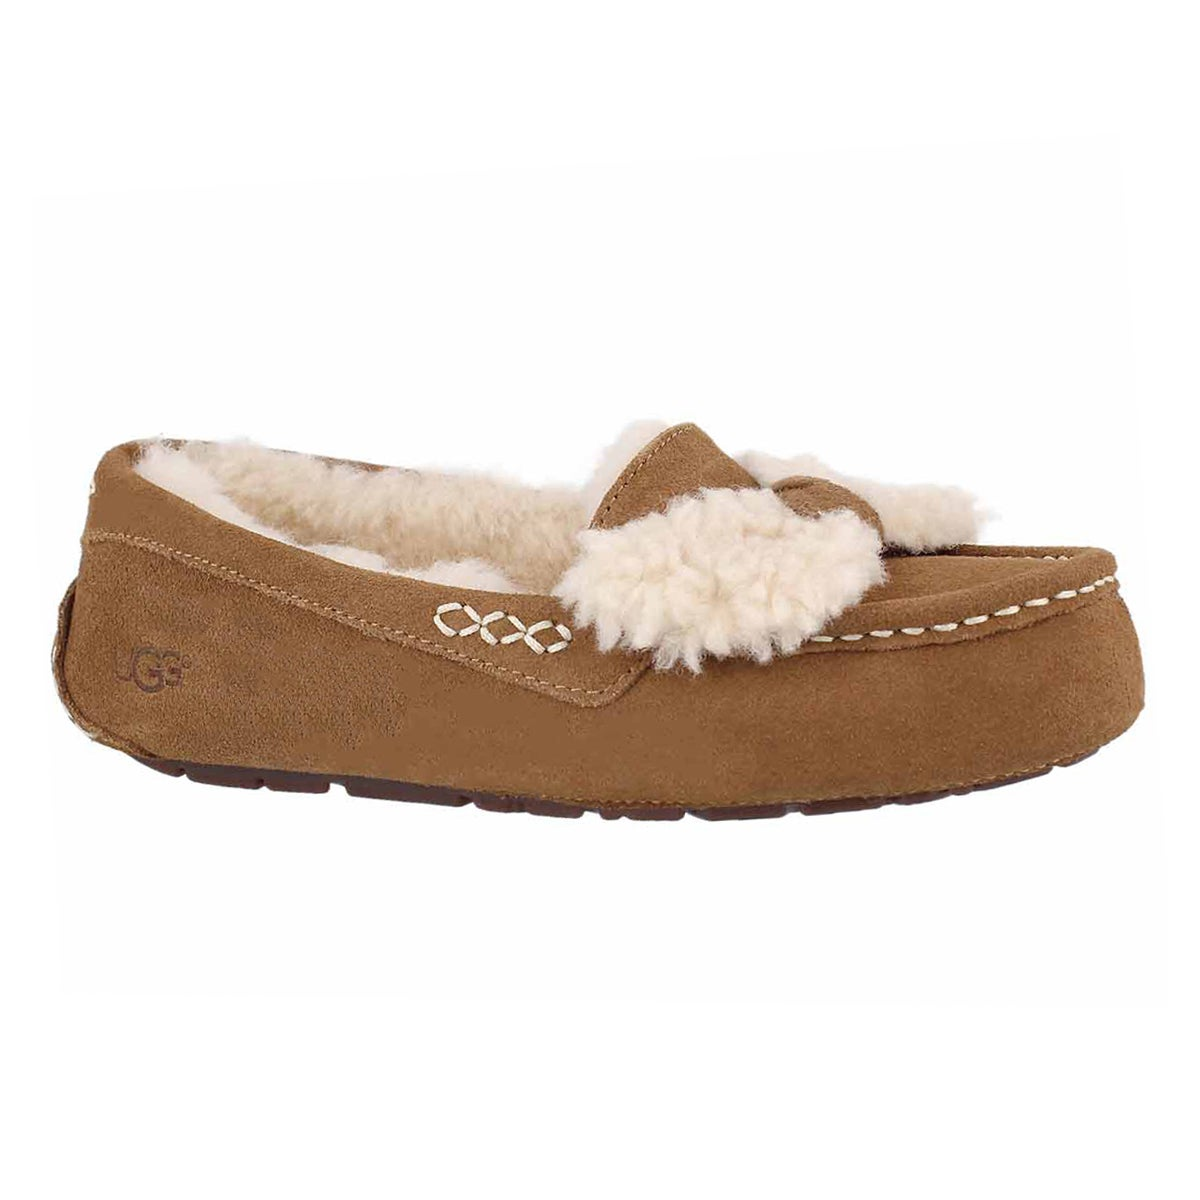 Women's ANSLEY FUR BOW ches sheepskin moccasins